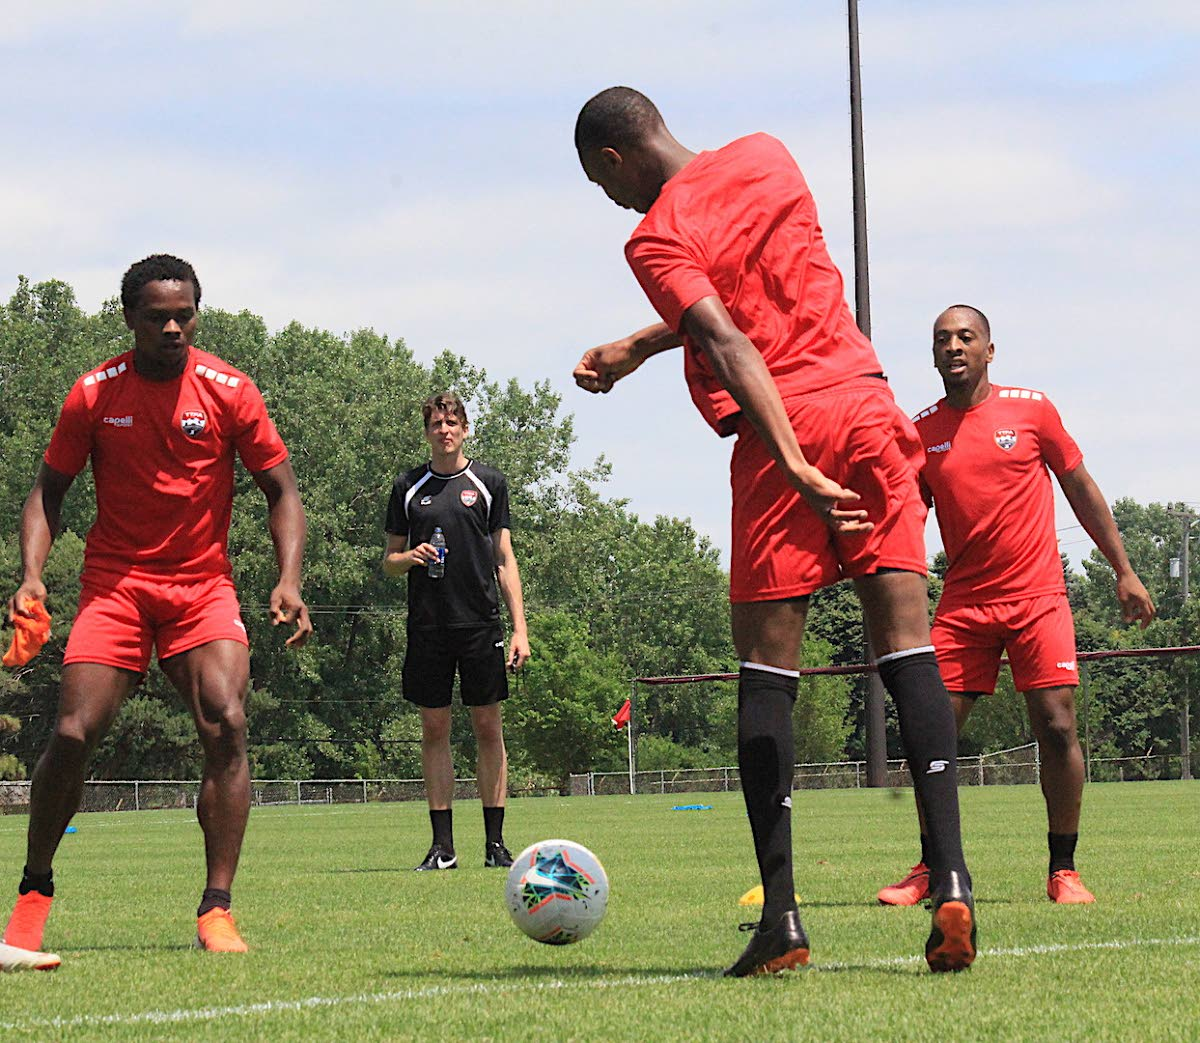 TT's Levi Garcia, left, Kevan George, centre, and Leston Paul, right, take part in a training session ahead of their Gold Cup opener against Panama tomorrow. PHOTO BY TTFA MEDIA